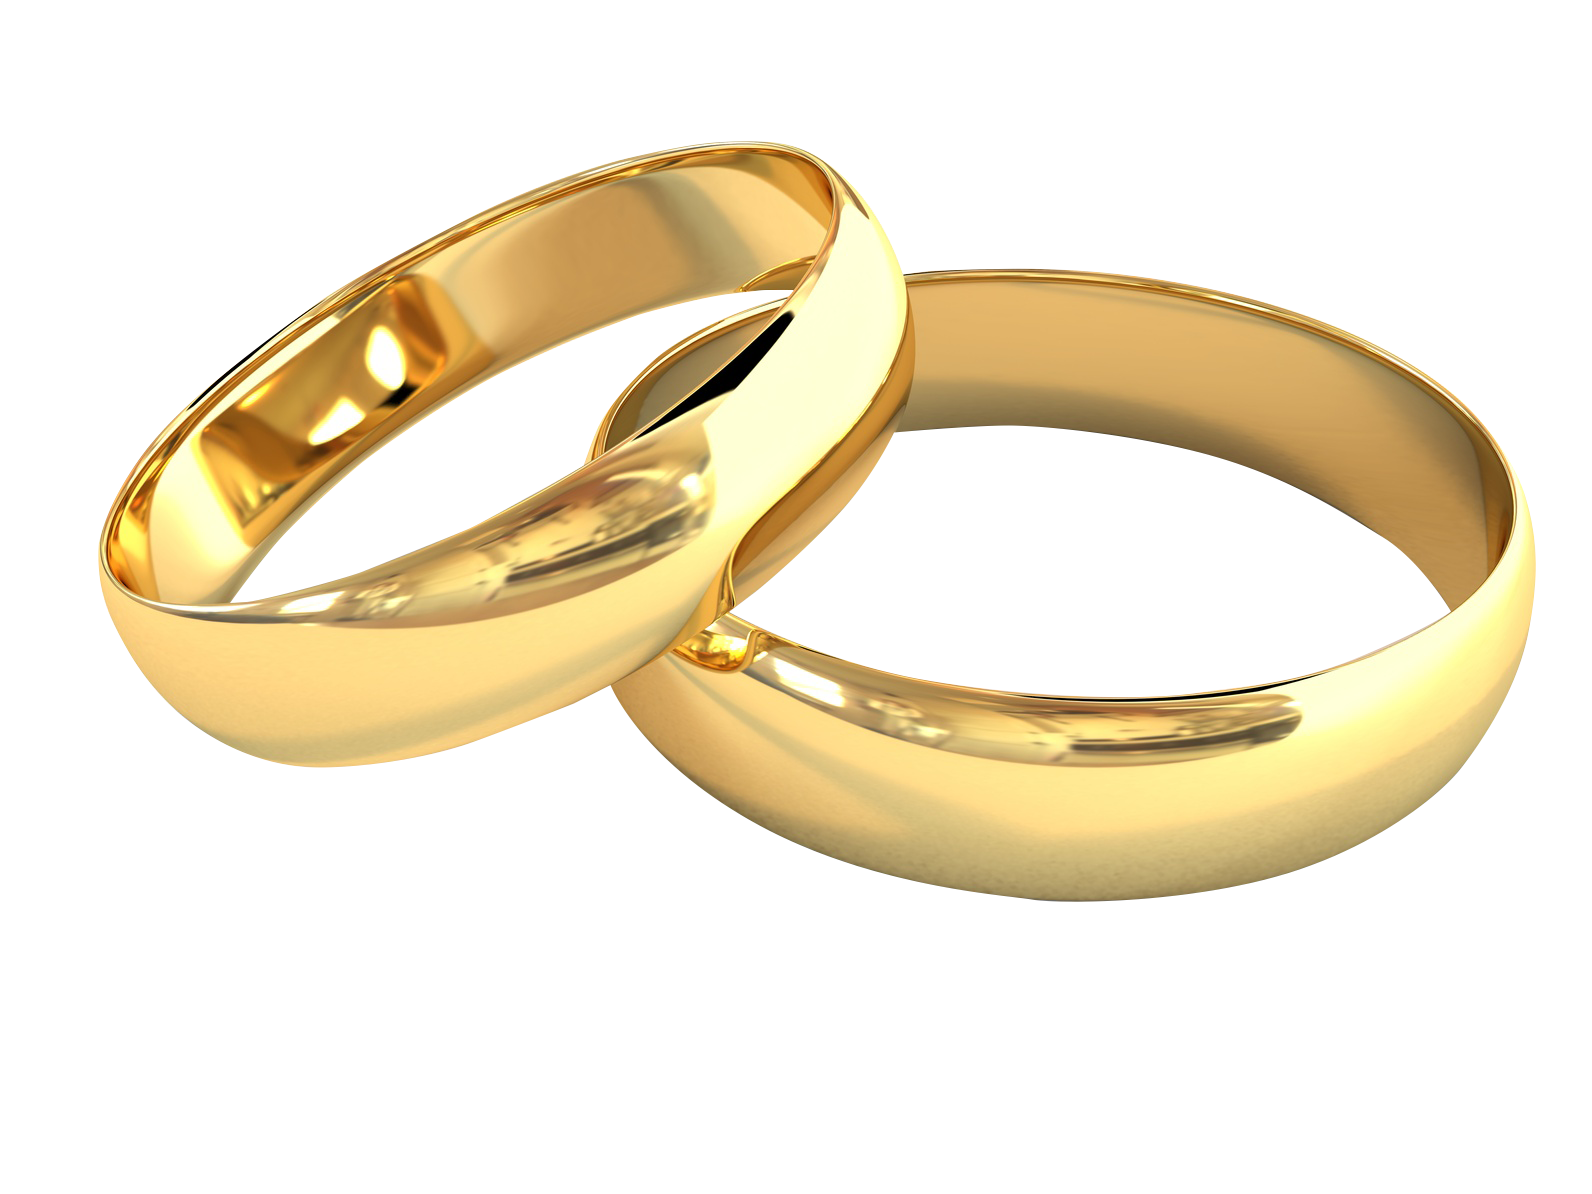 PNG Rings Wedding Transparent Rings WeddingPNG Images PlusPNG